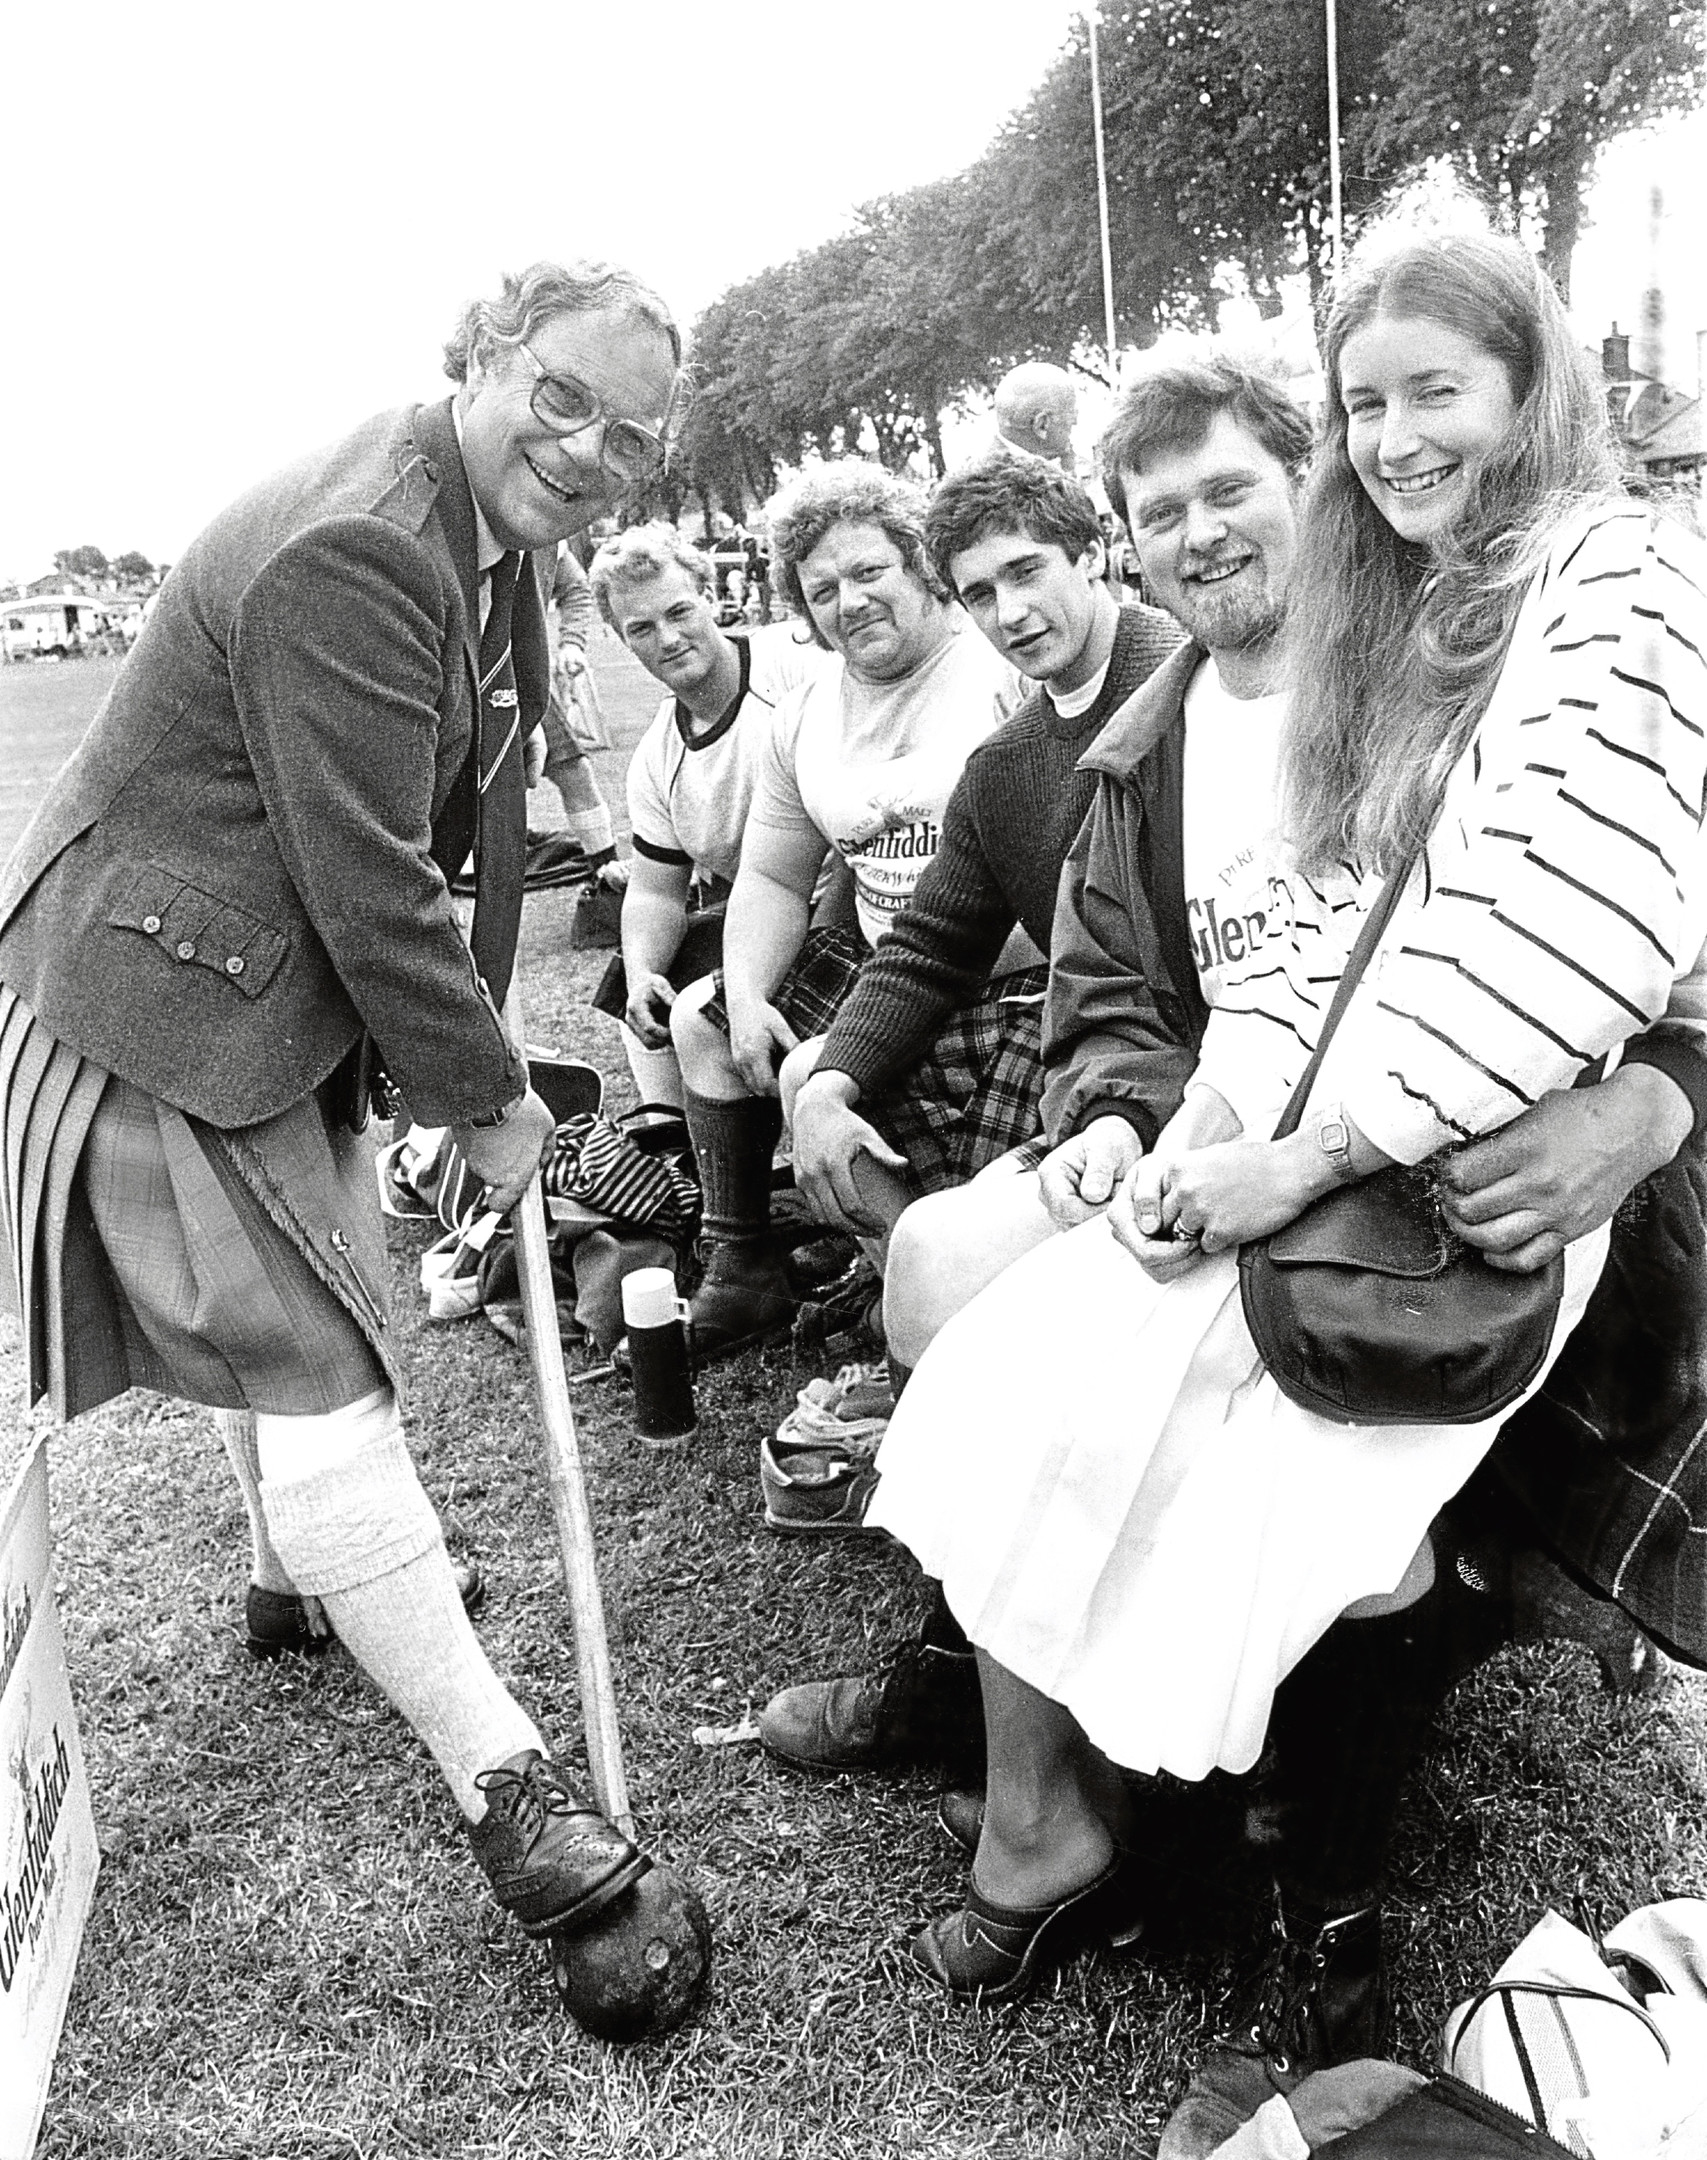 Beechgrove Garden presenters Jim McColl and Carole Baxter paid a visit to the games in 1987.